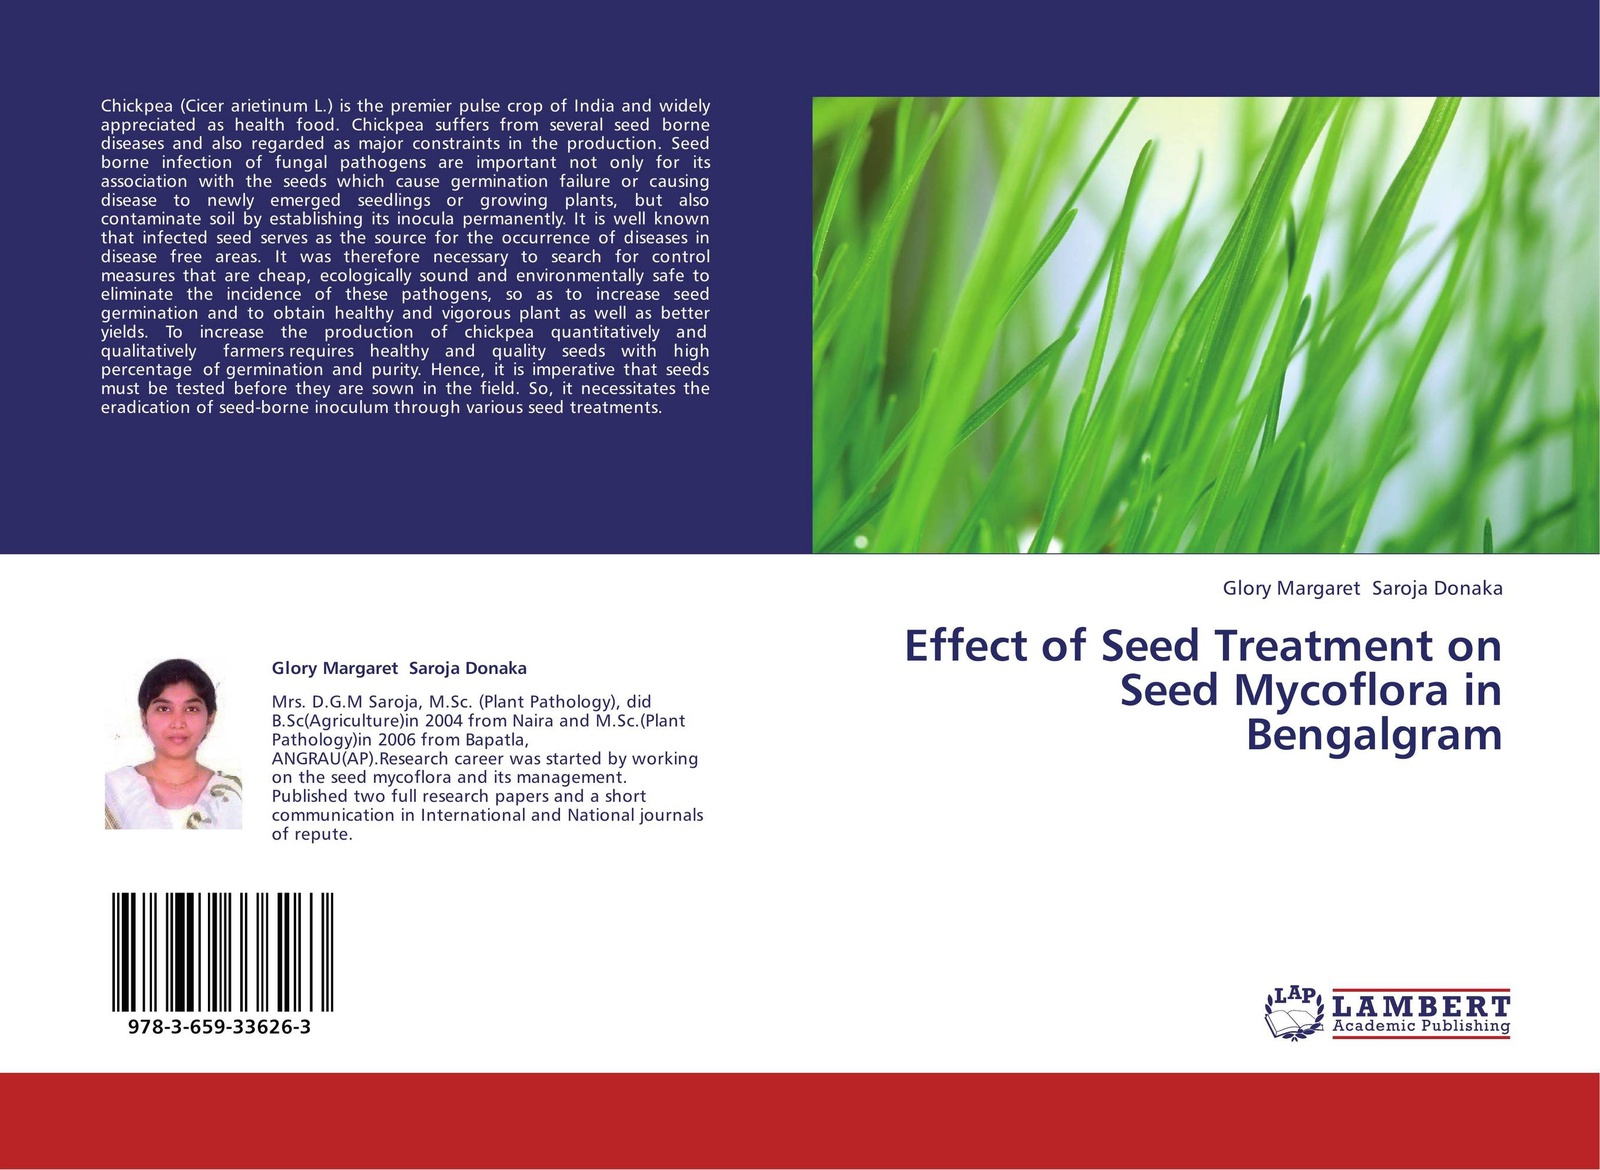 Glory Margaret Saroja Donaka Effect of Seed Treatment on Seed Mycoflora in Bengalgram mohd sayeed akhtar biocontrol of root rot disease complex of chickpea